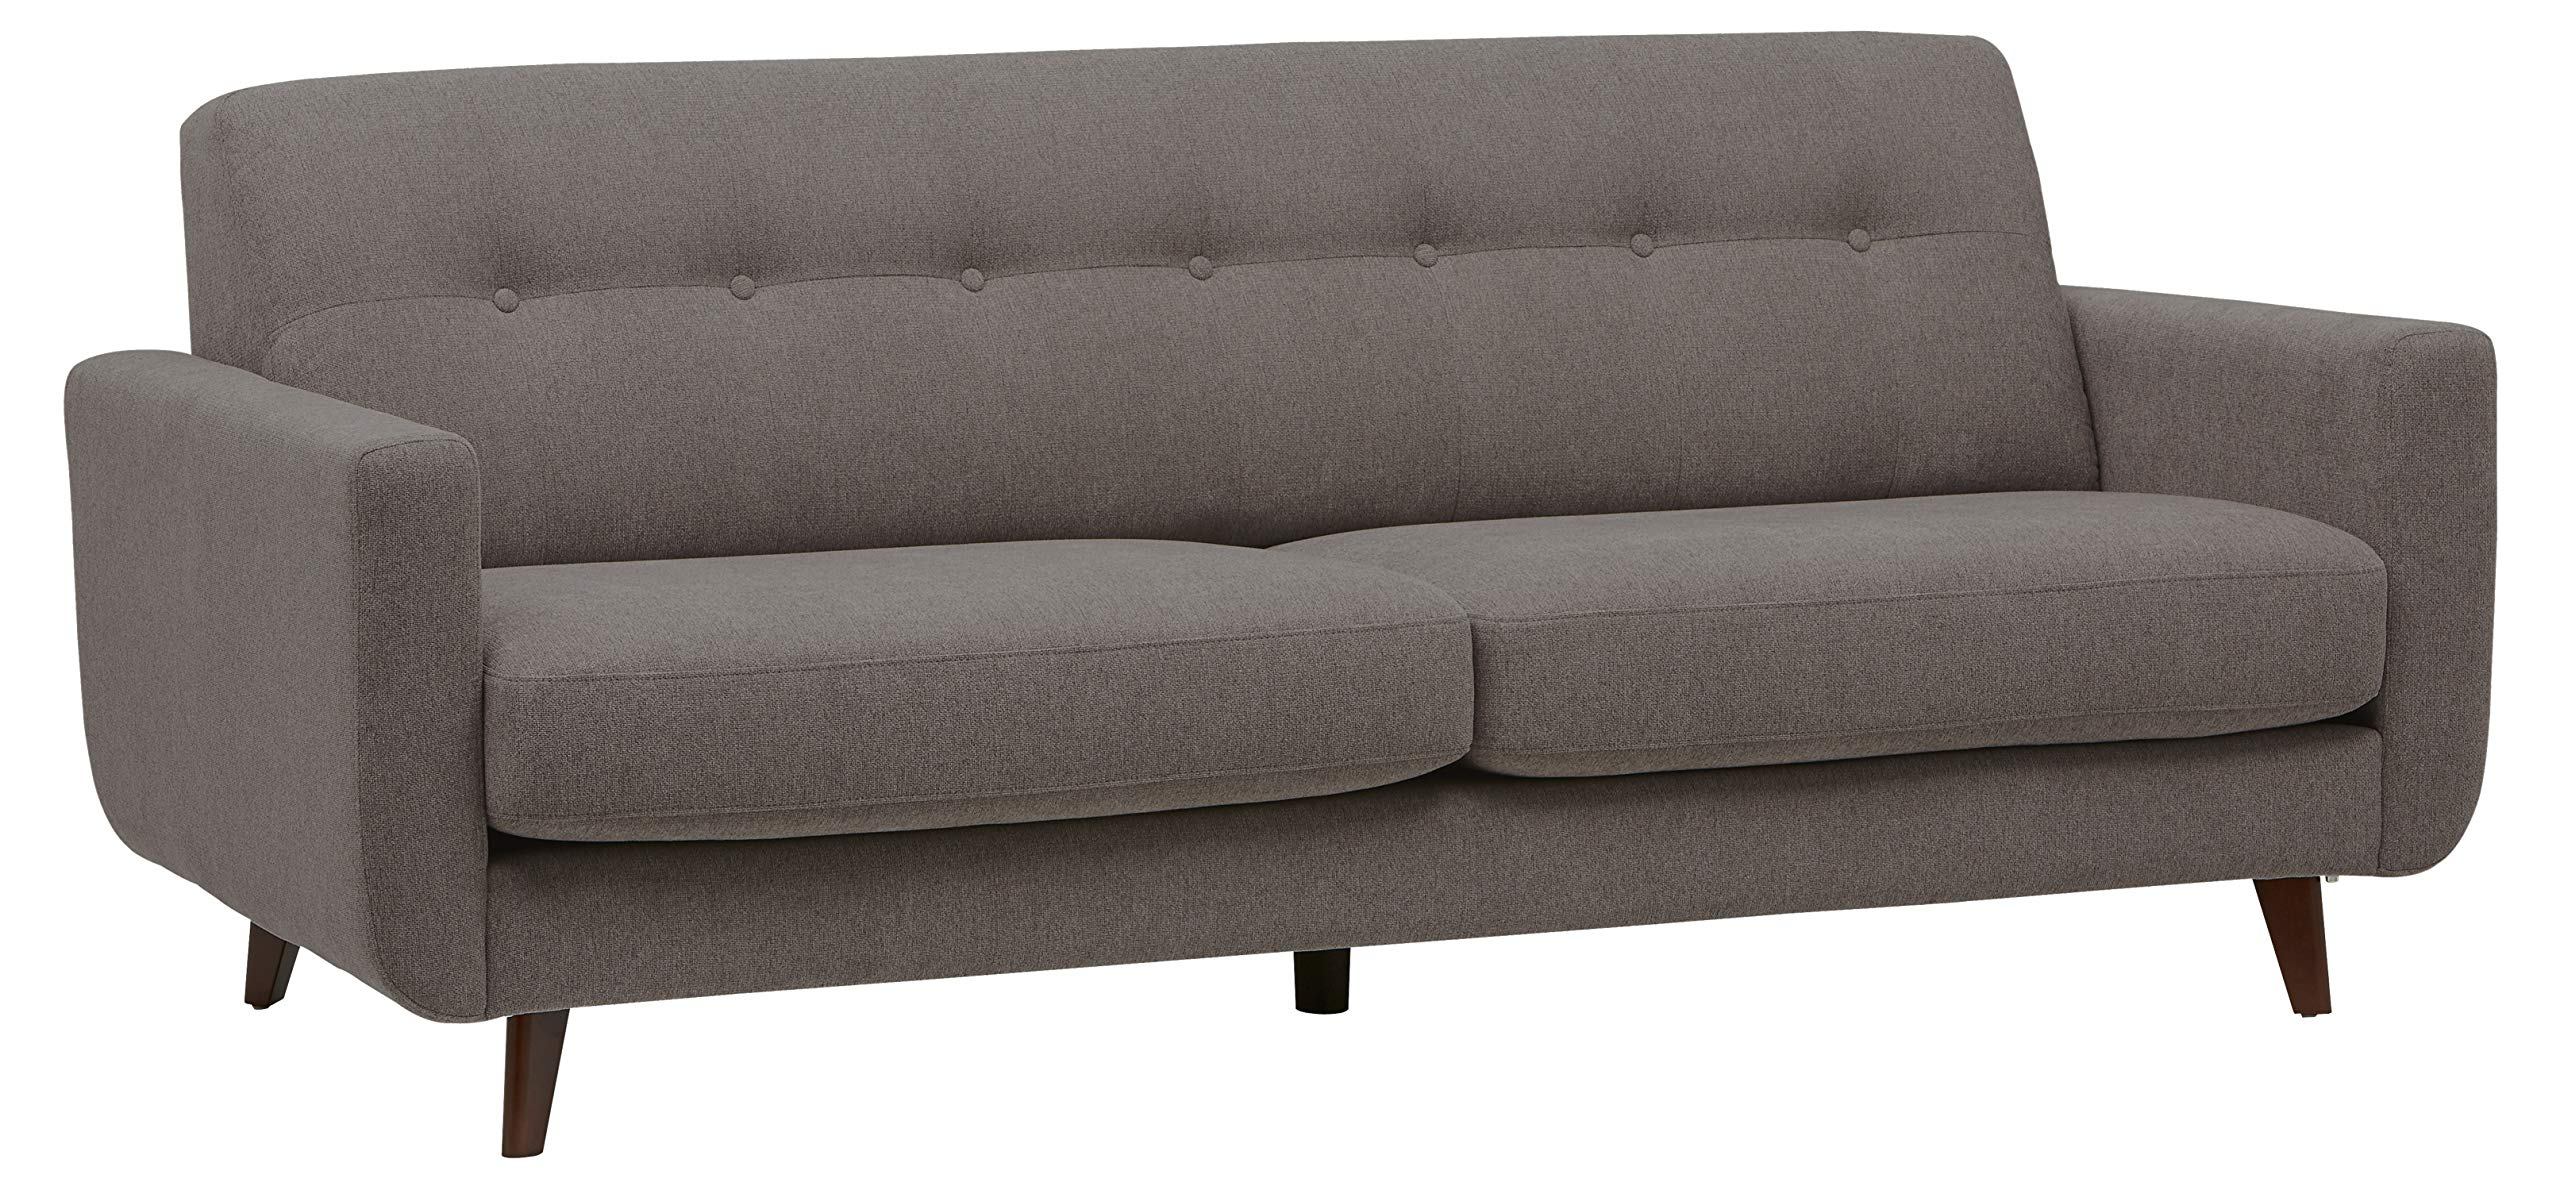 Rivet Sloane Mid-Century Modern Sofa with Tufted Back, 79.9''W, Storm by Rivet